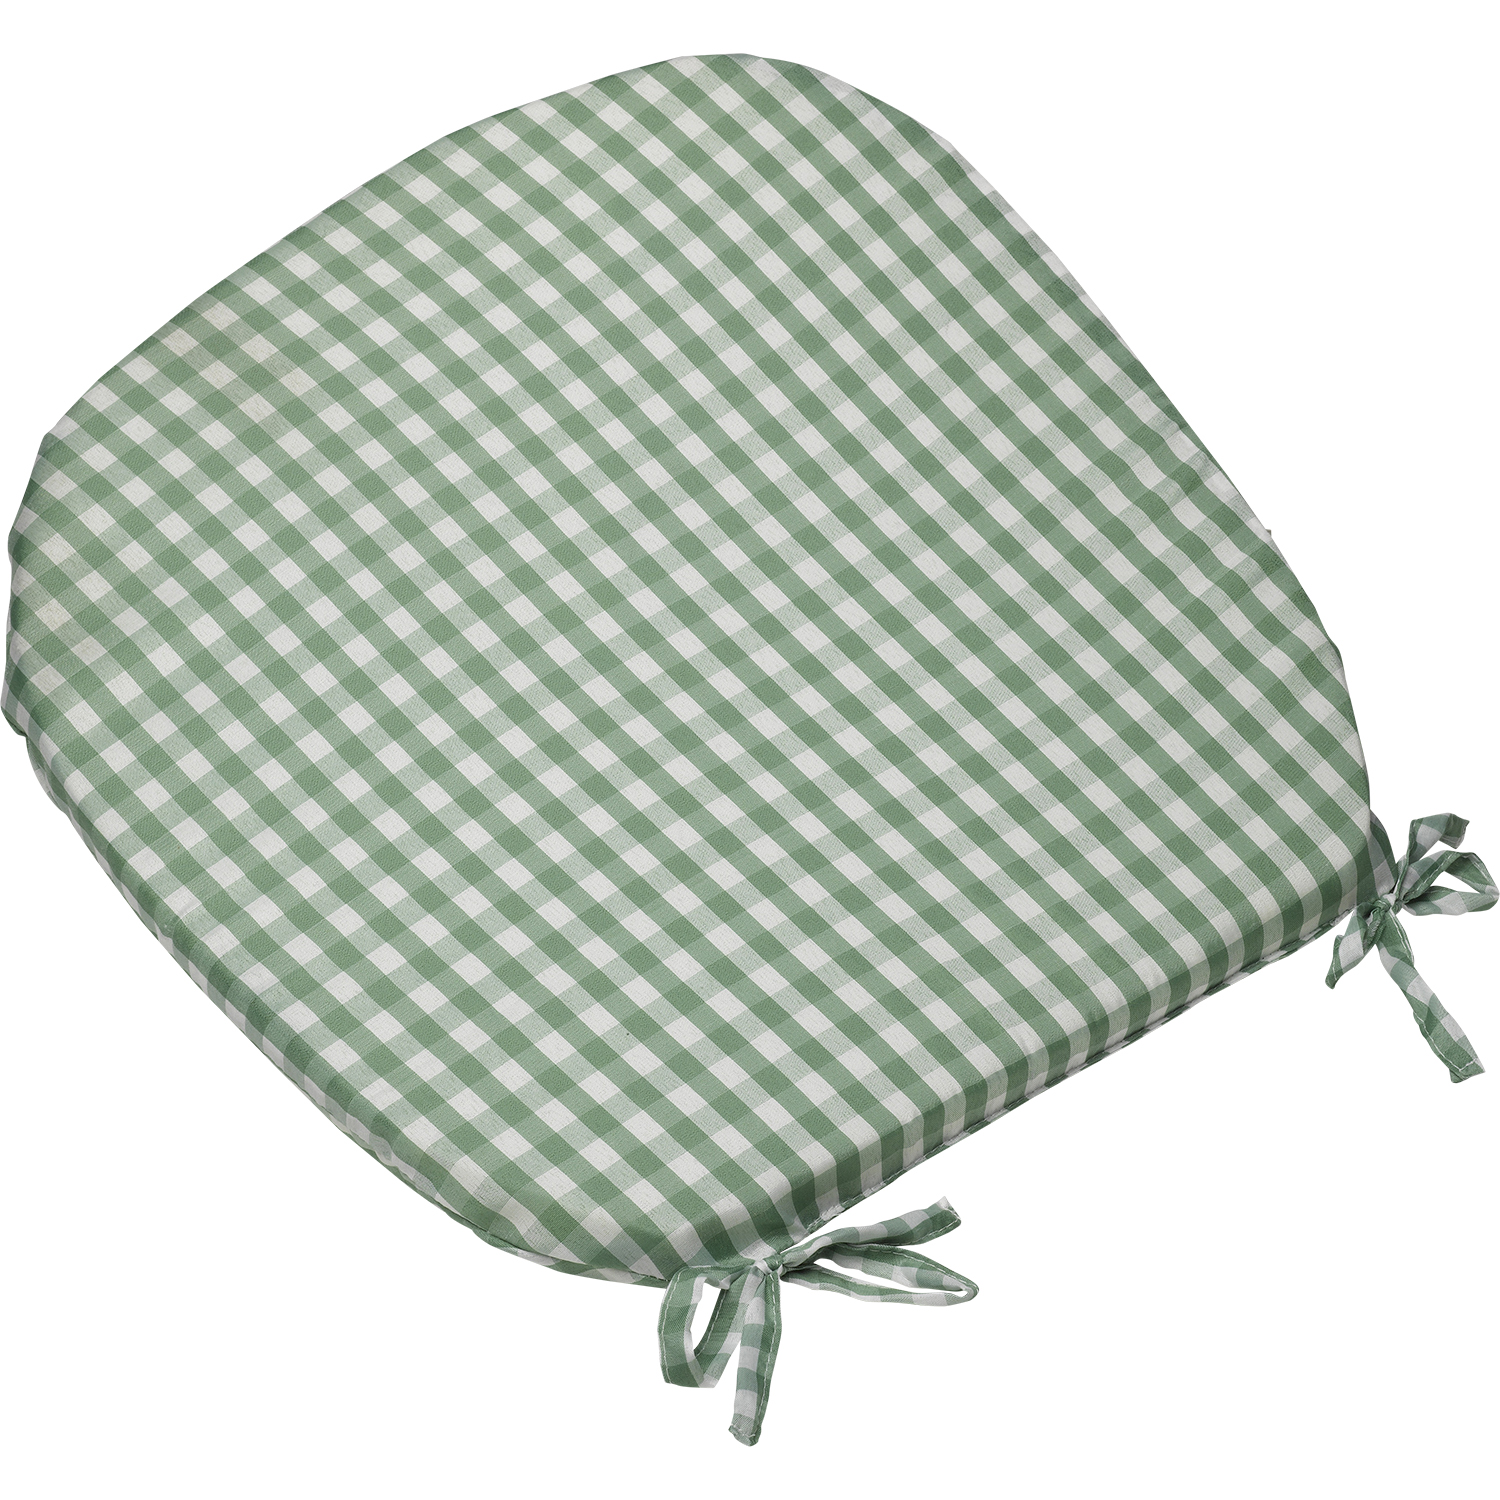 "gingham check tie on seat pad 16"" x 16"" kitchen outdoor dining"